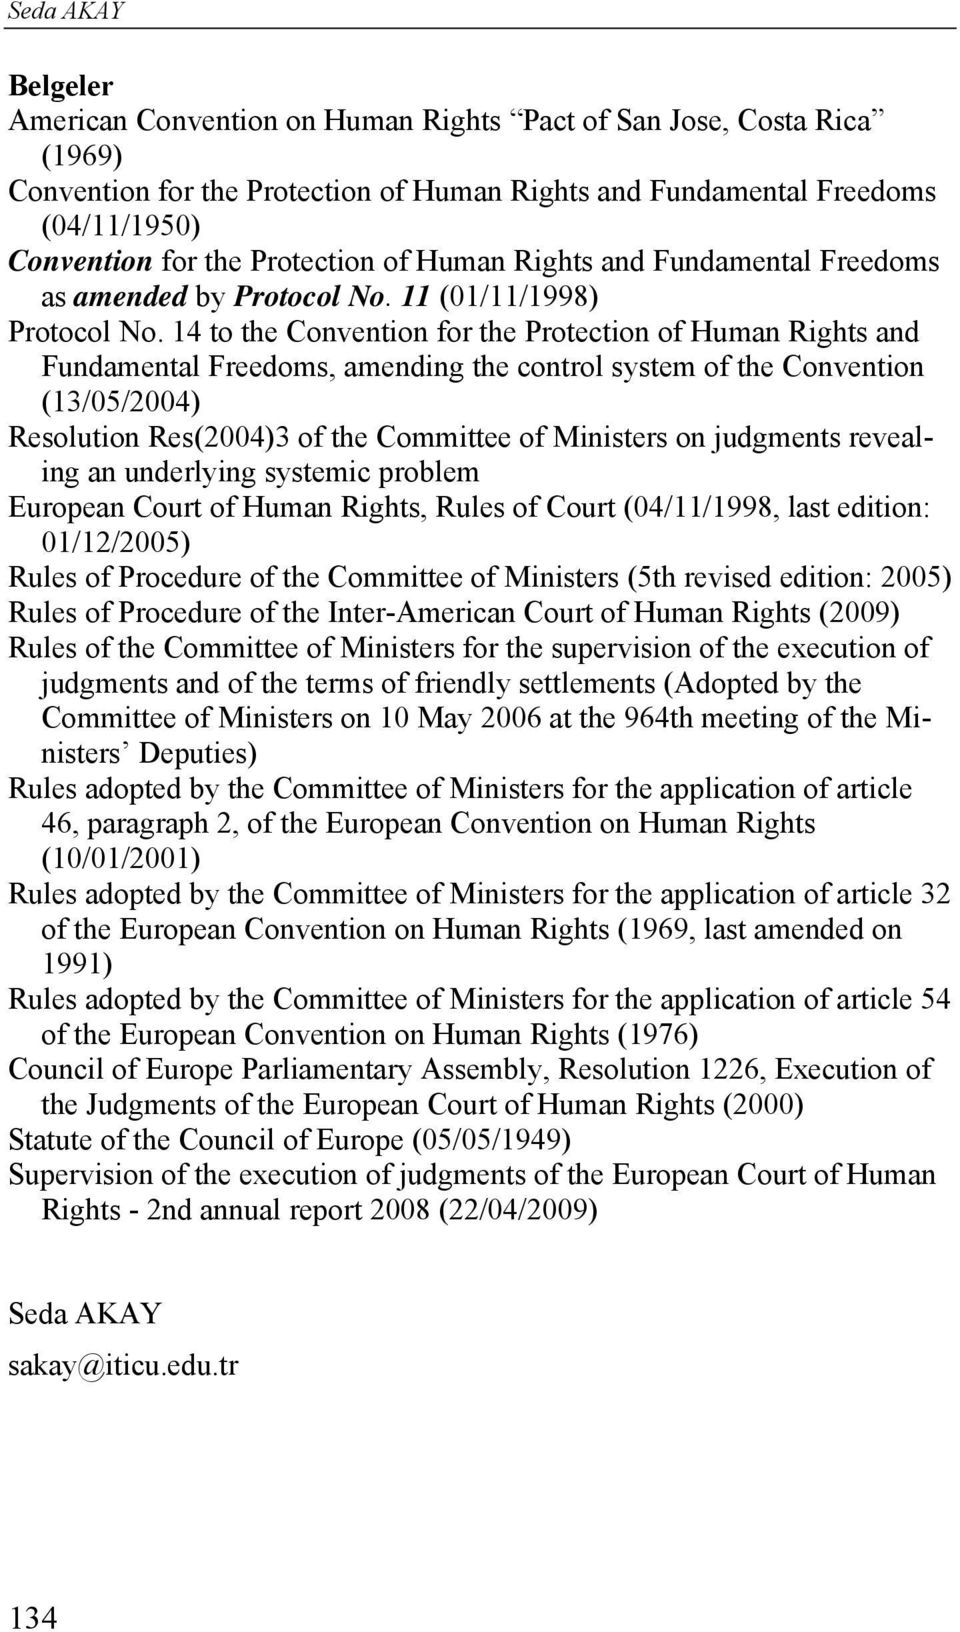 14 to the Convention for the Protection of Human Rights and Fundamental Freedoms, amending the control system of the Convention (13/05/2004) Resolution Res(2004)3 of the Committee of Ministers on